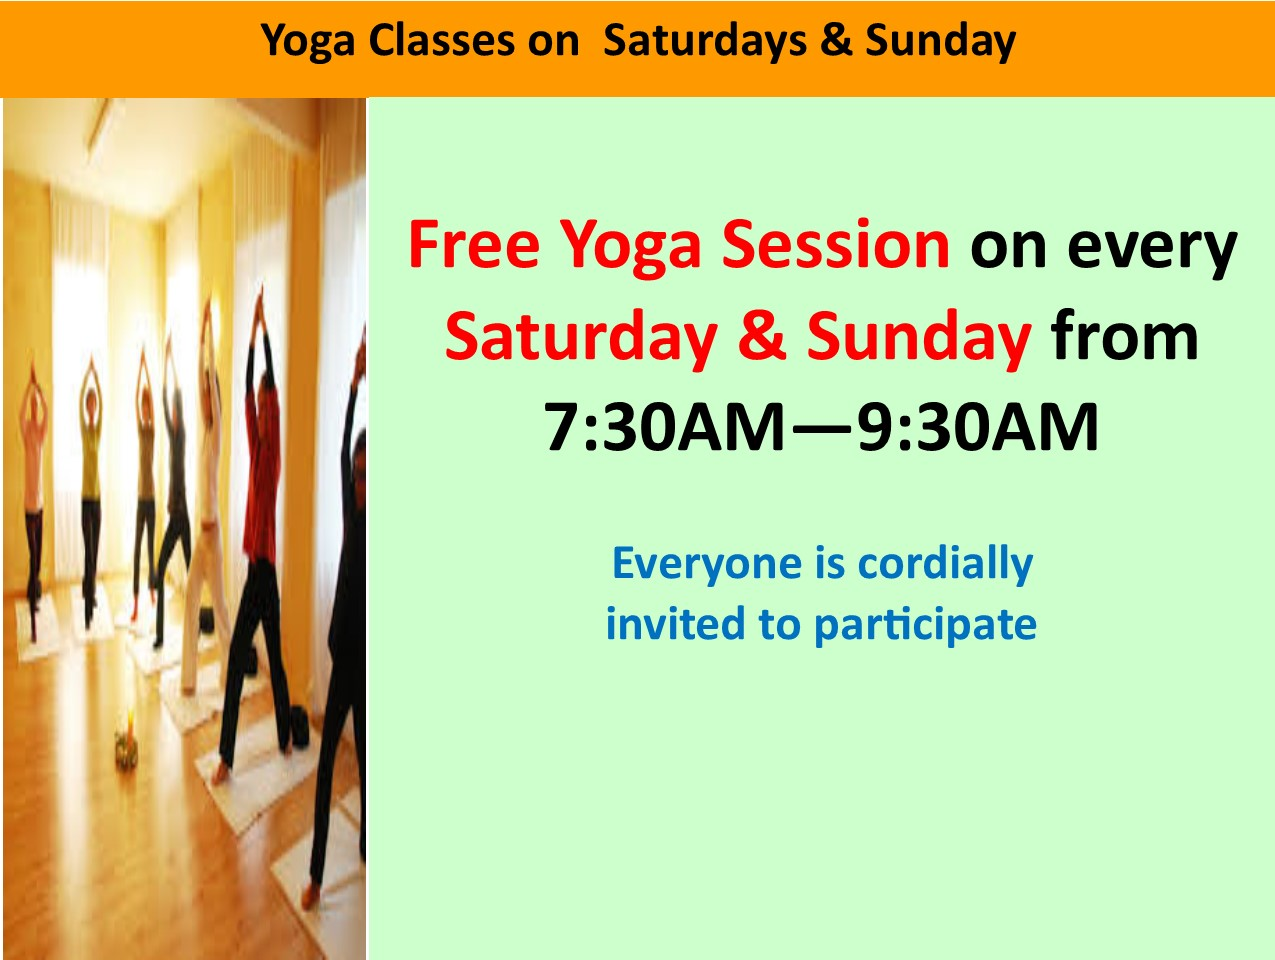 Free Yoga Sessions Every Saturday and Sunday